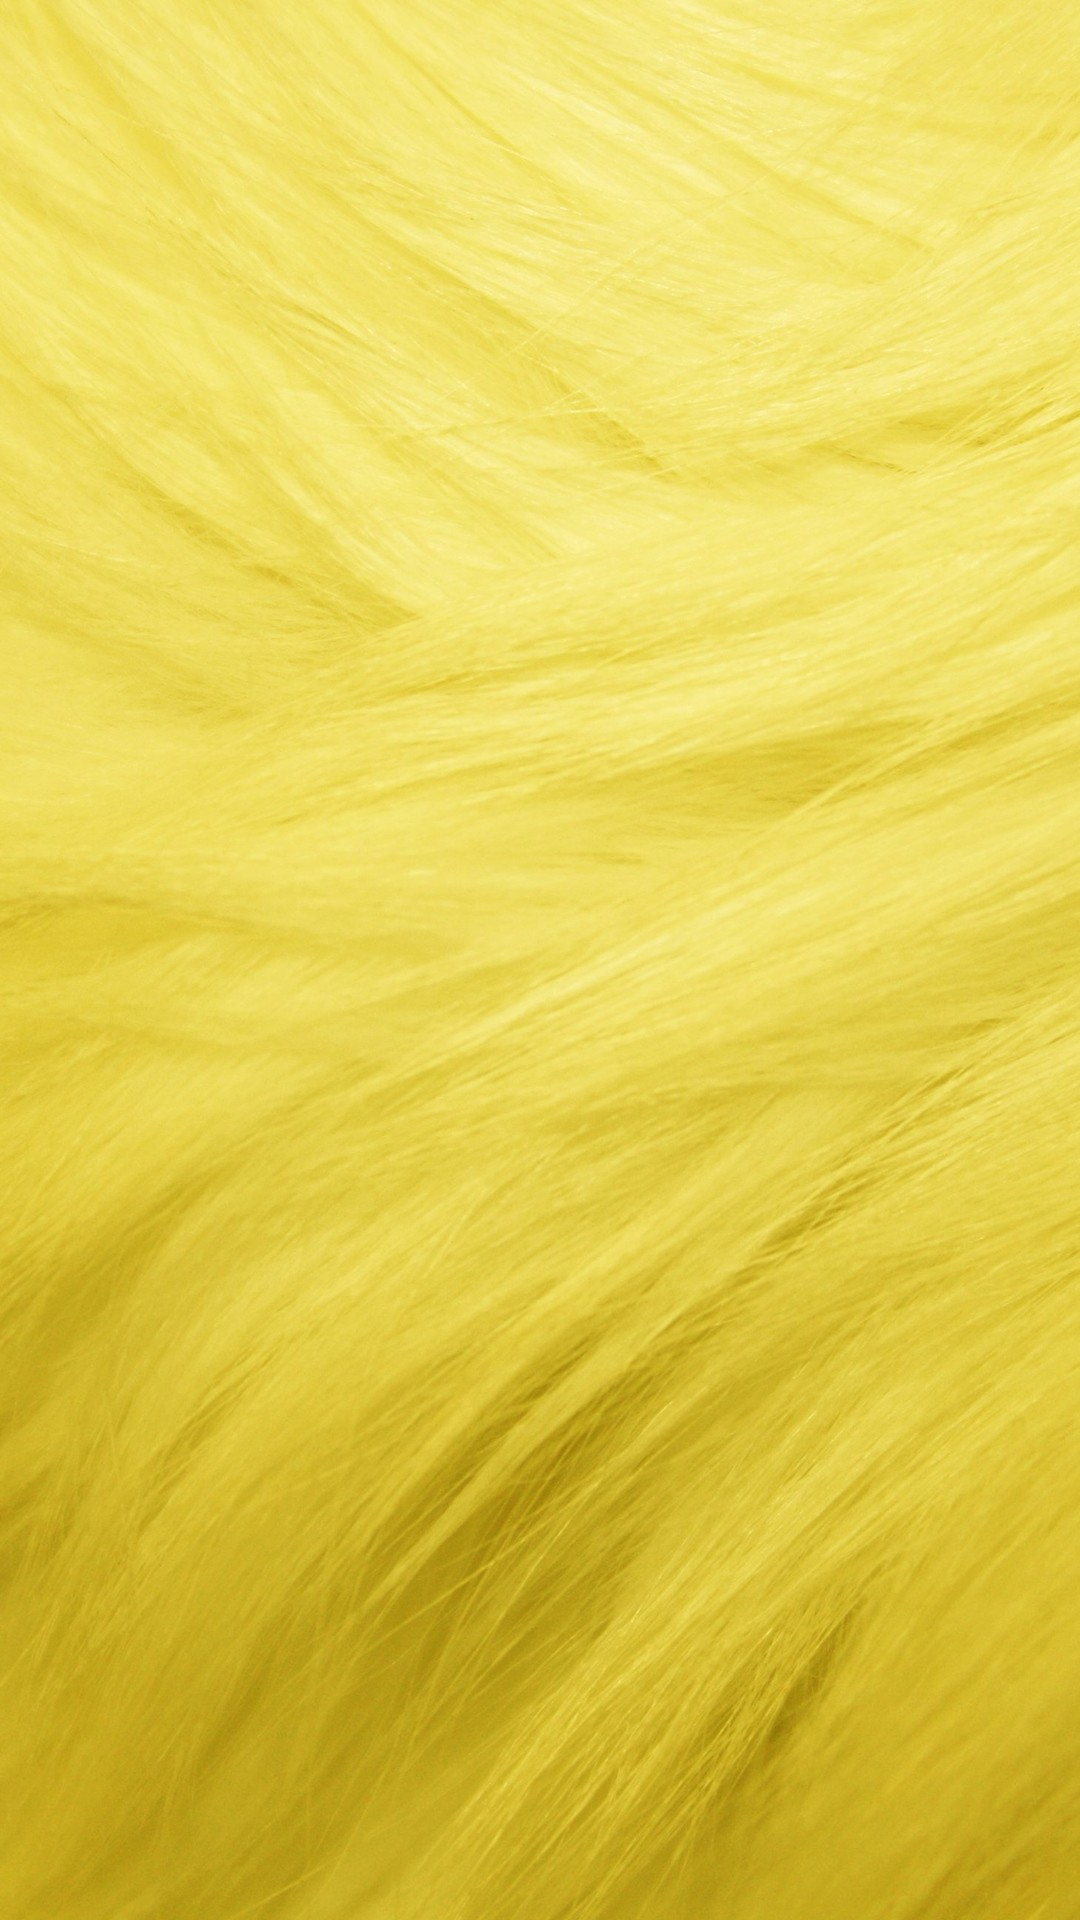 Res: 1080x1920, Yellow Texture - Tap to see more fluffy wallpapers! - @mobile9